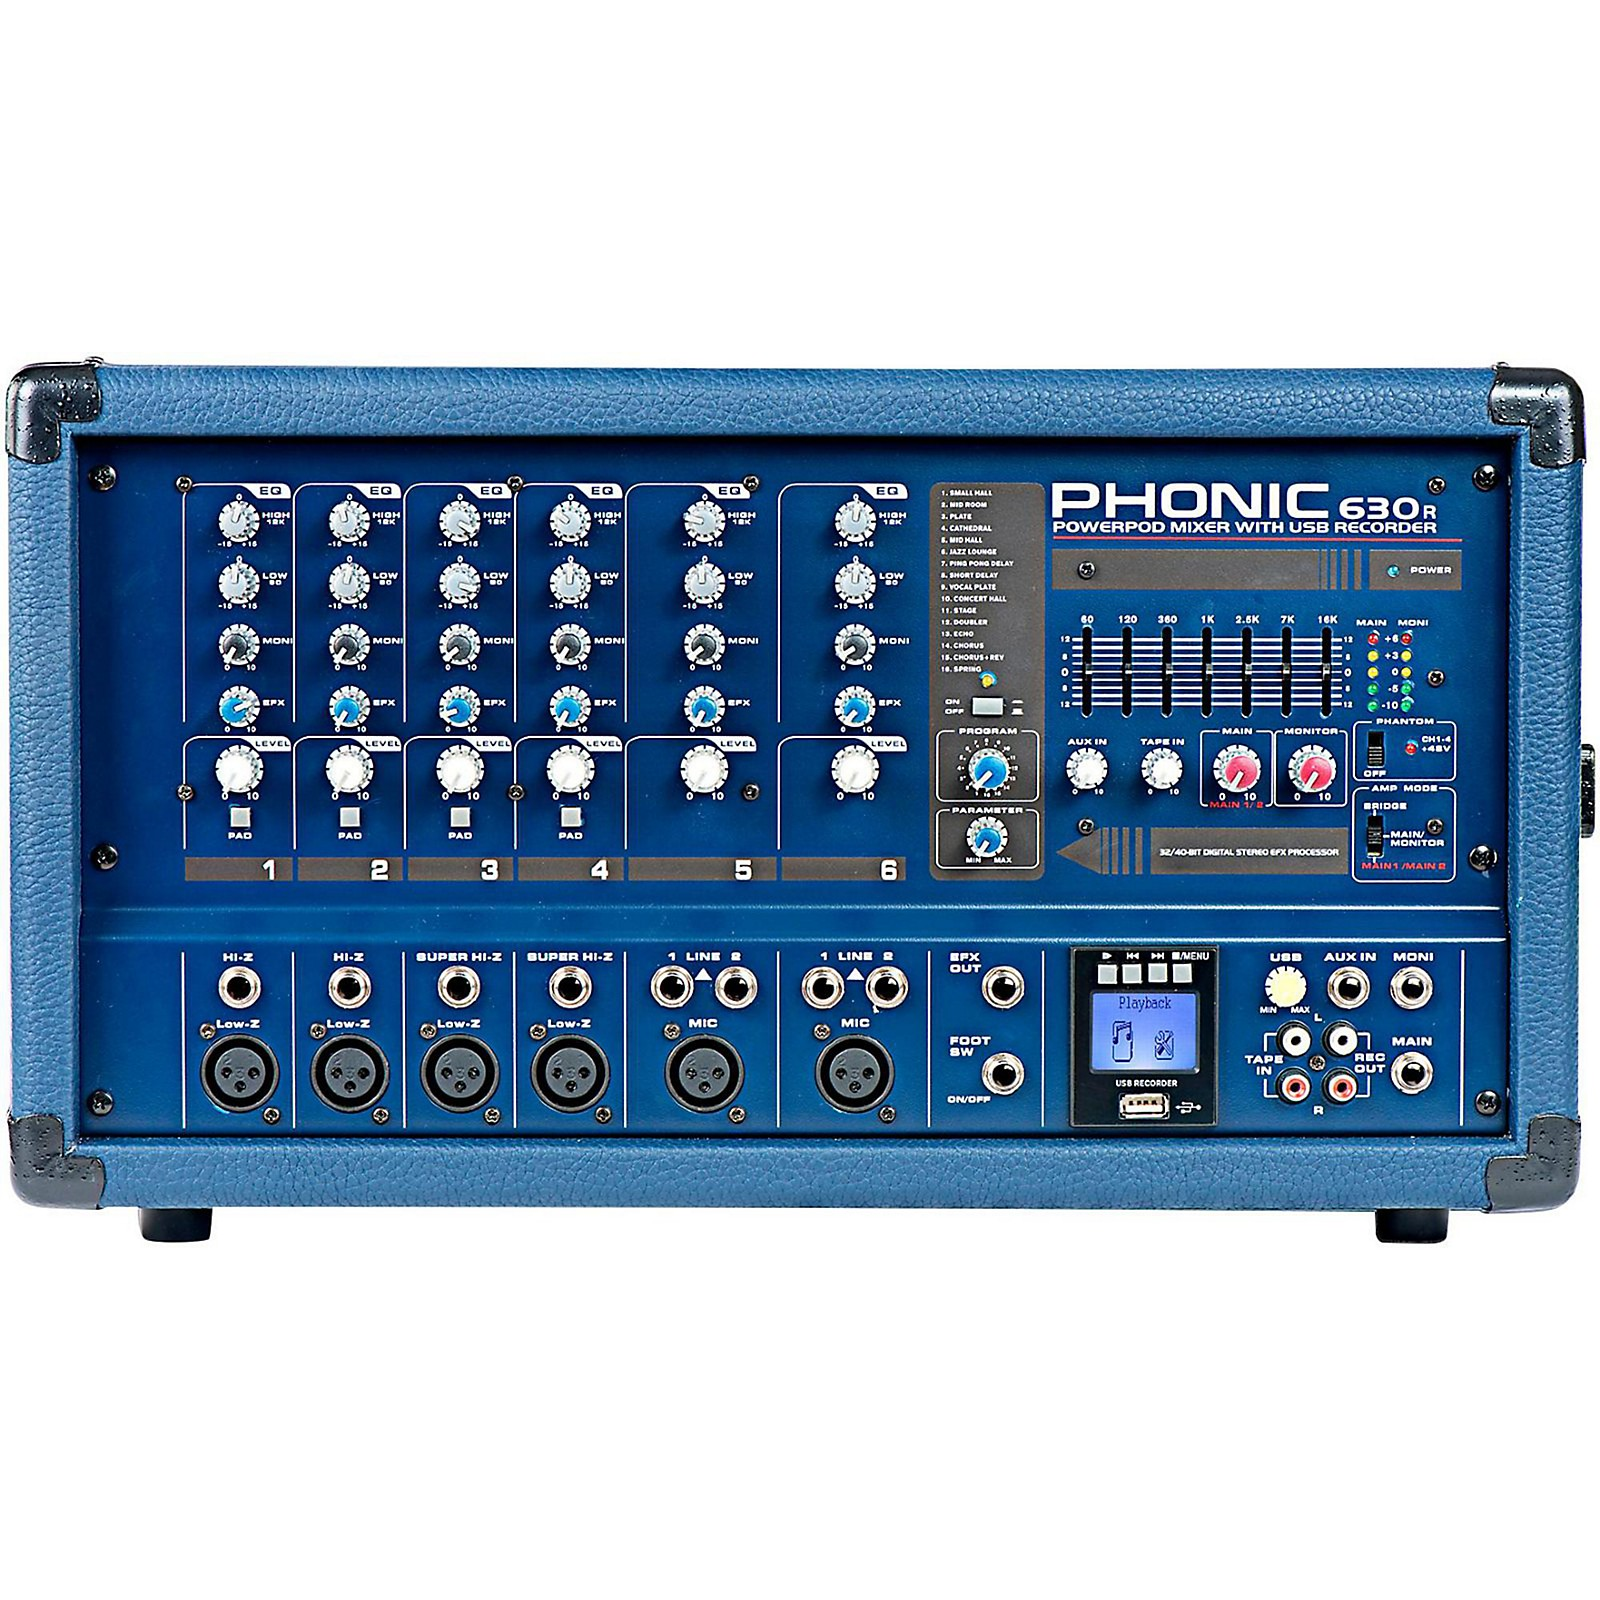 Phonic Powerpod 630R 300W 6-Channel Powered Mixer with USB Recorder